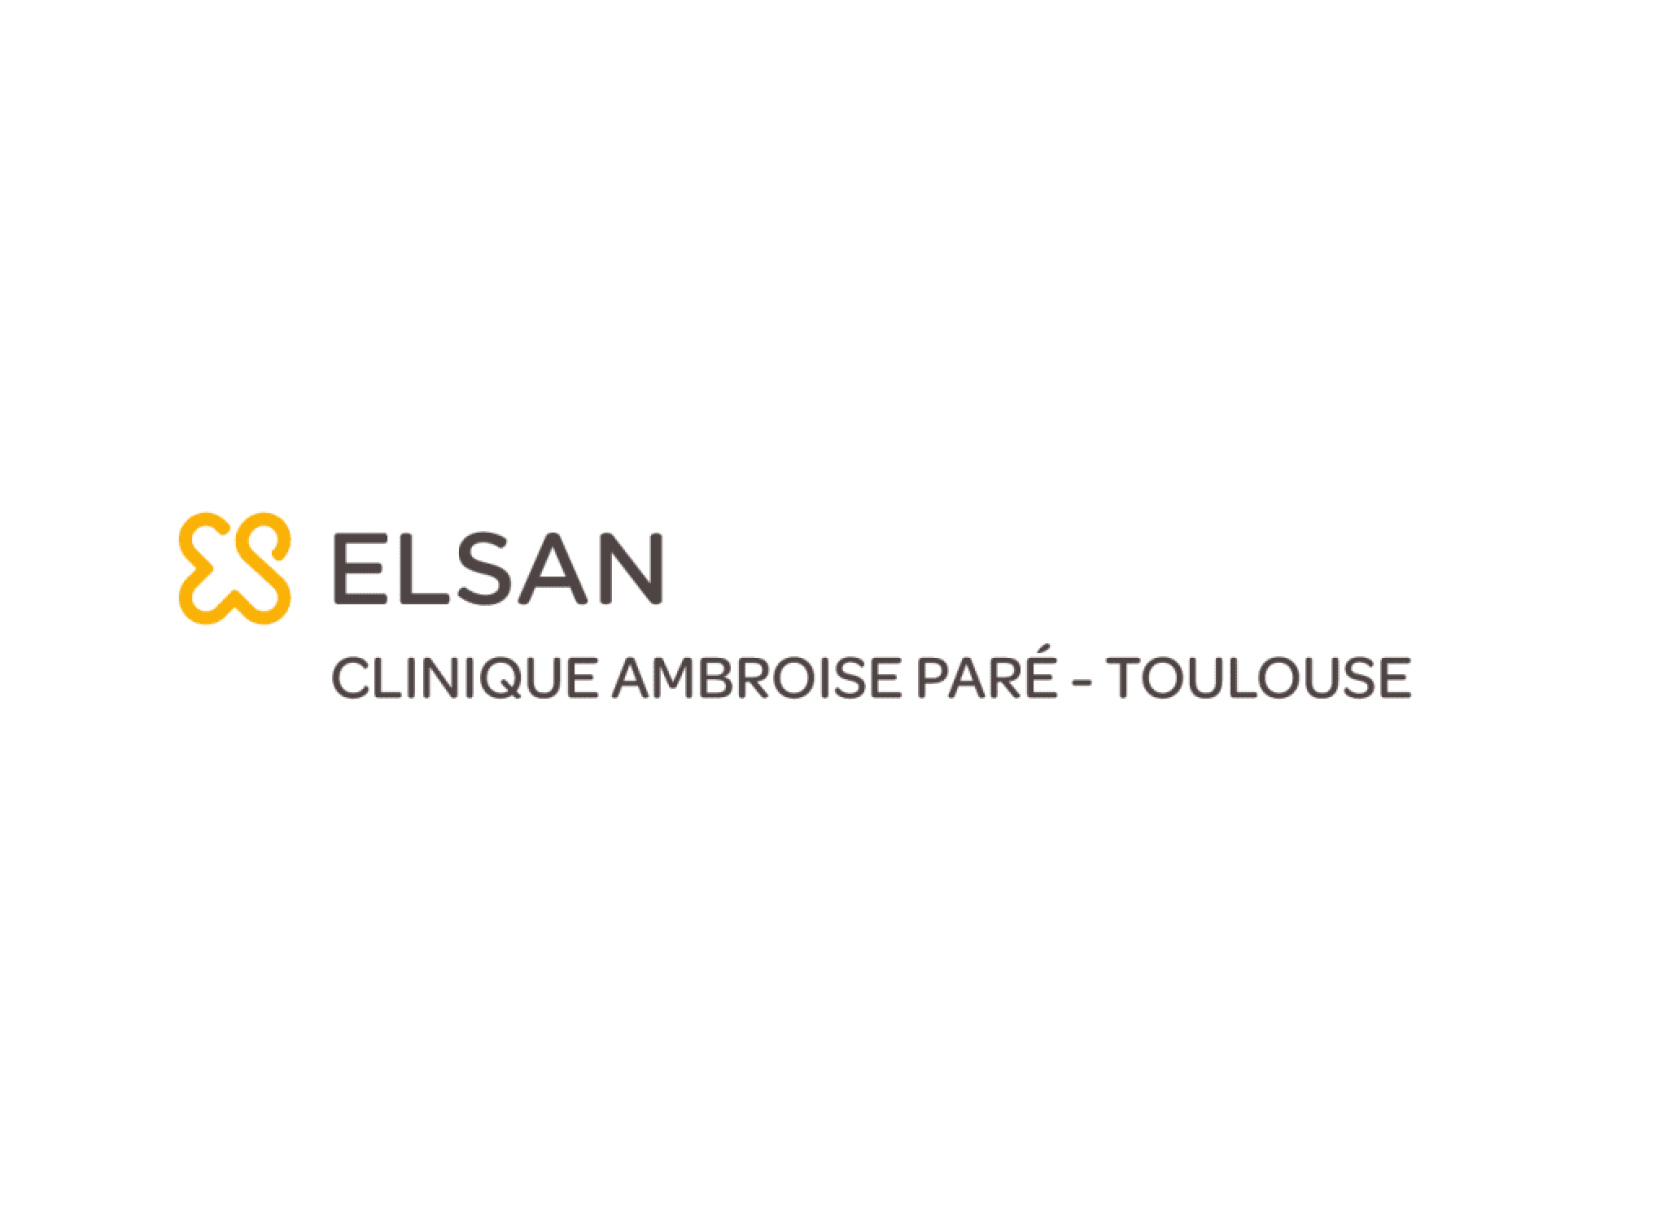 Logo_Clinique_Ambroise_PareToulouse_-_ELSAN